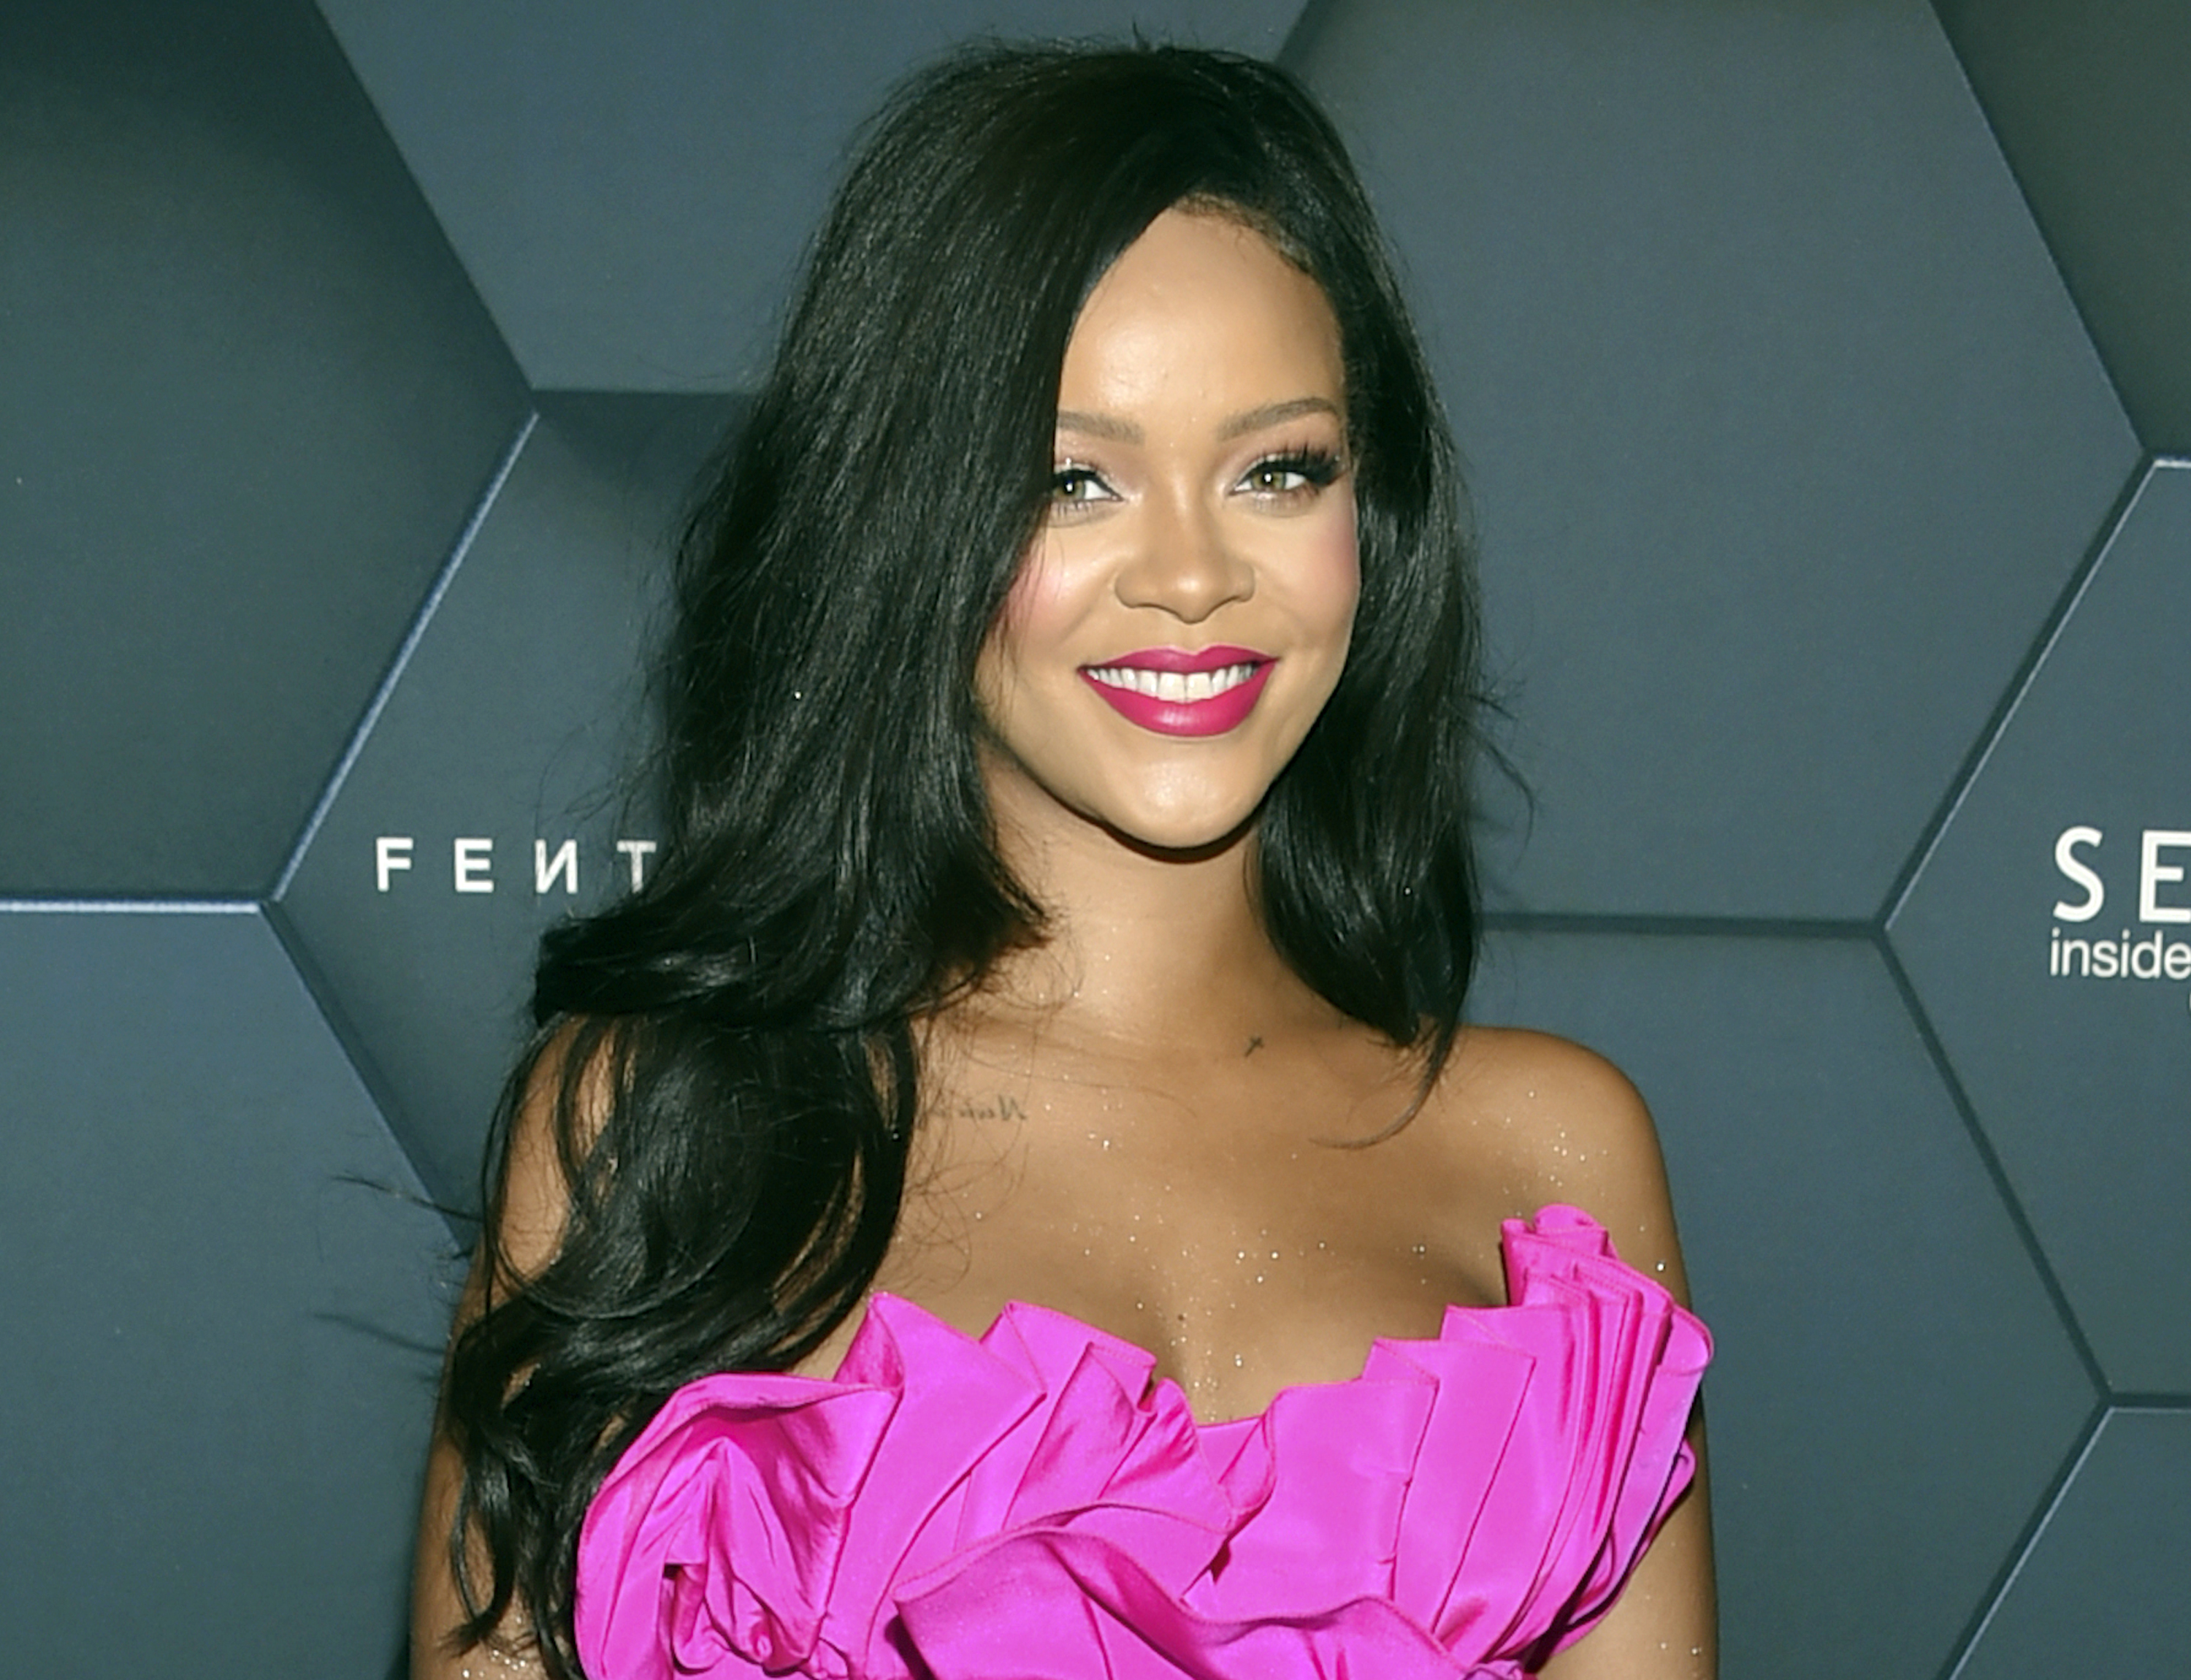 Rihanna Earns More Money Selling Makeup Than Records